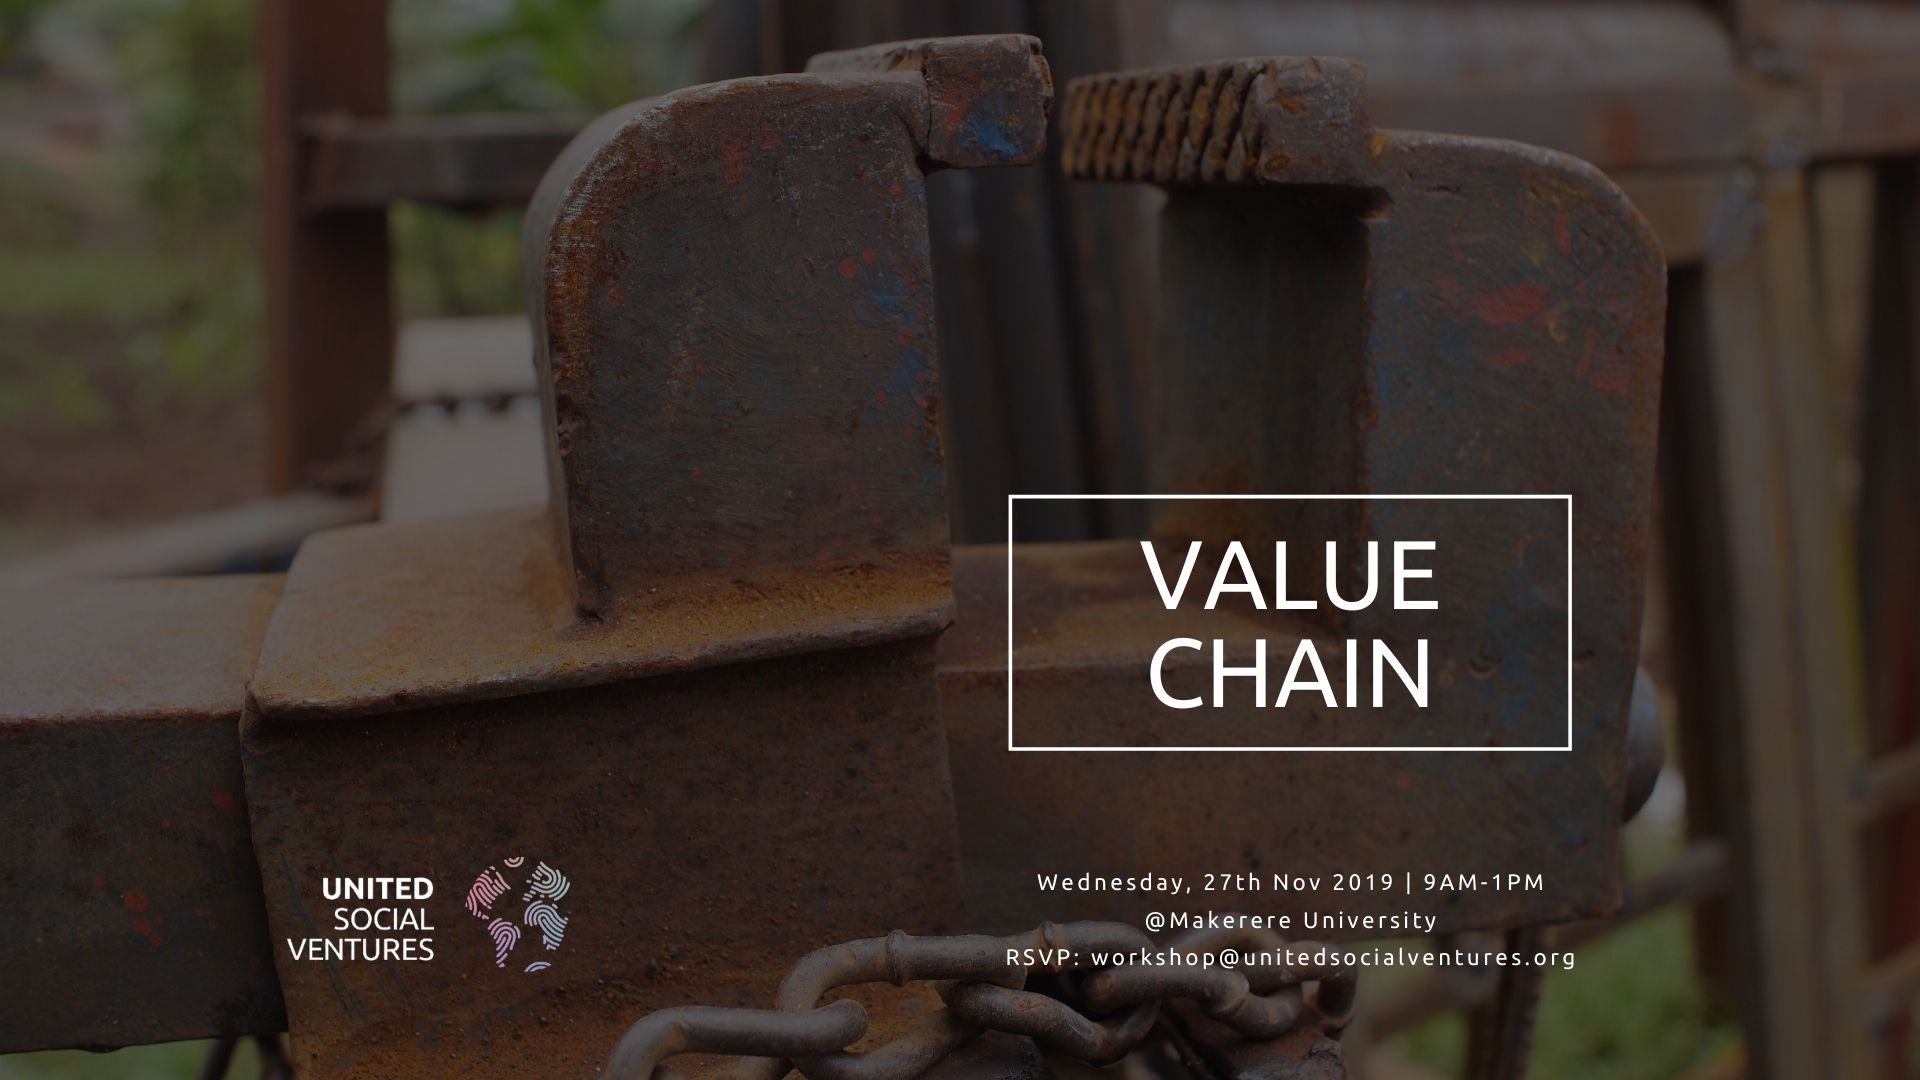 191127 - Value Chain (1)